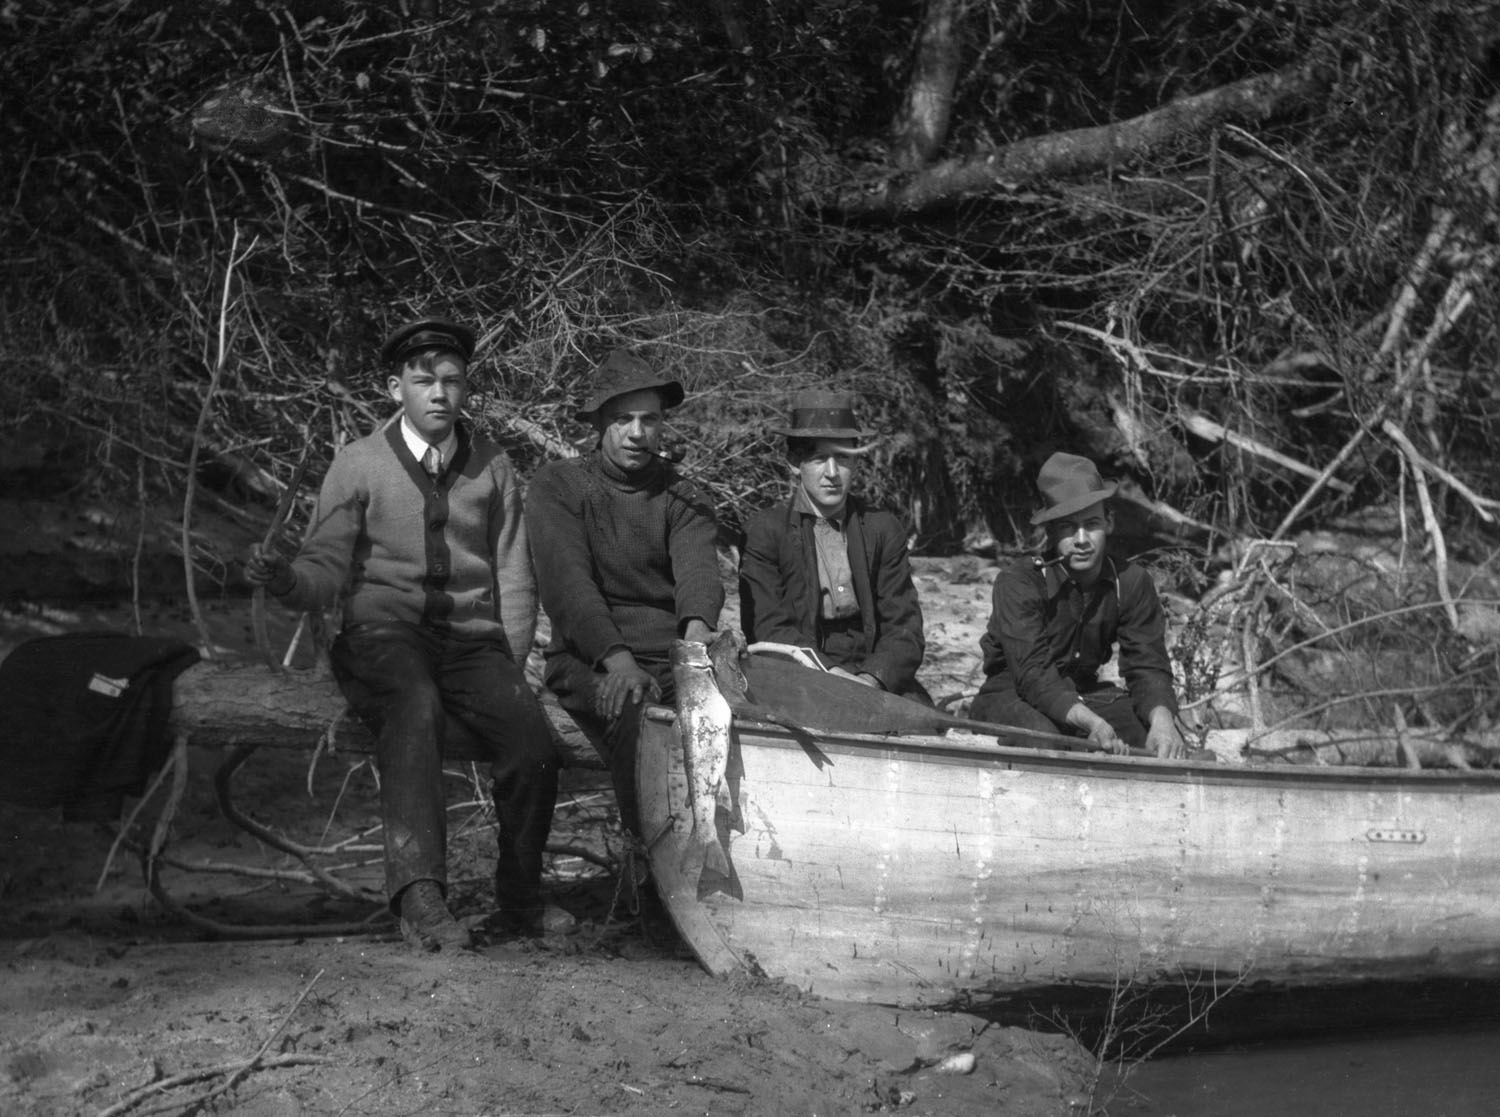 Four Men with Freshly Caught Fish [DN-637]